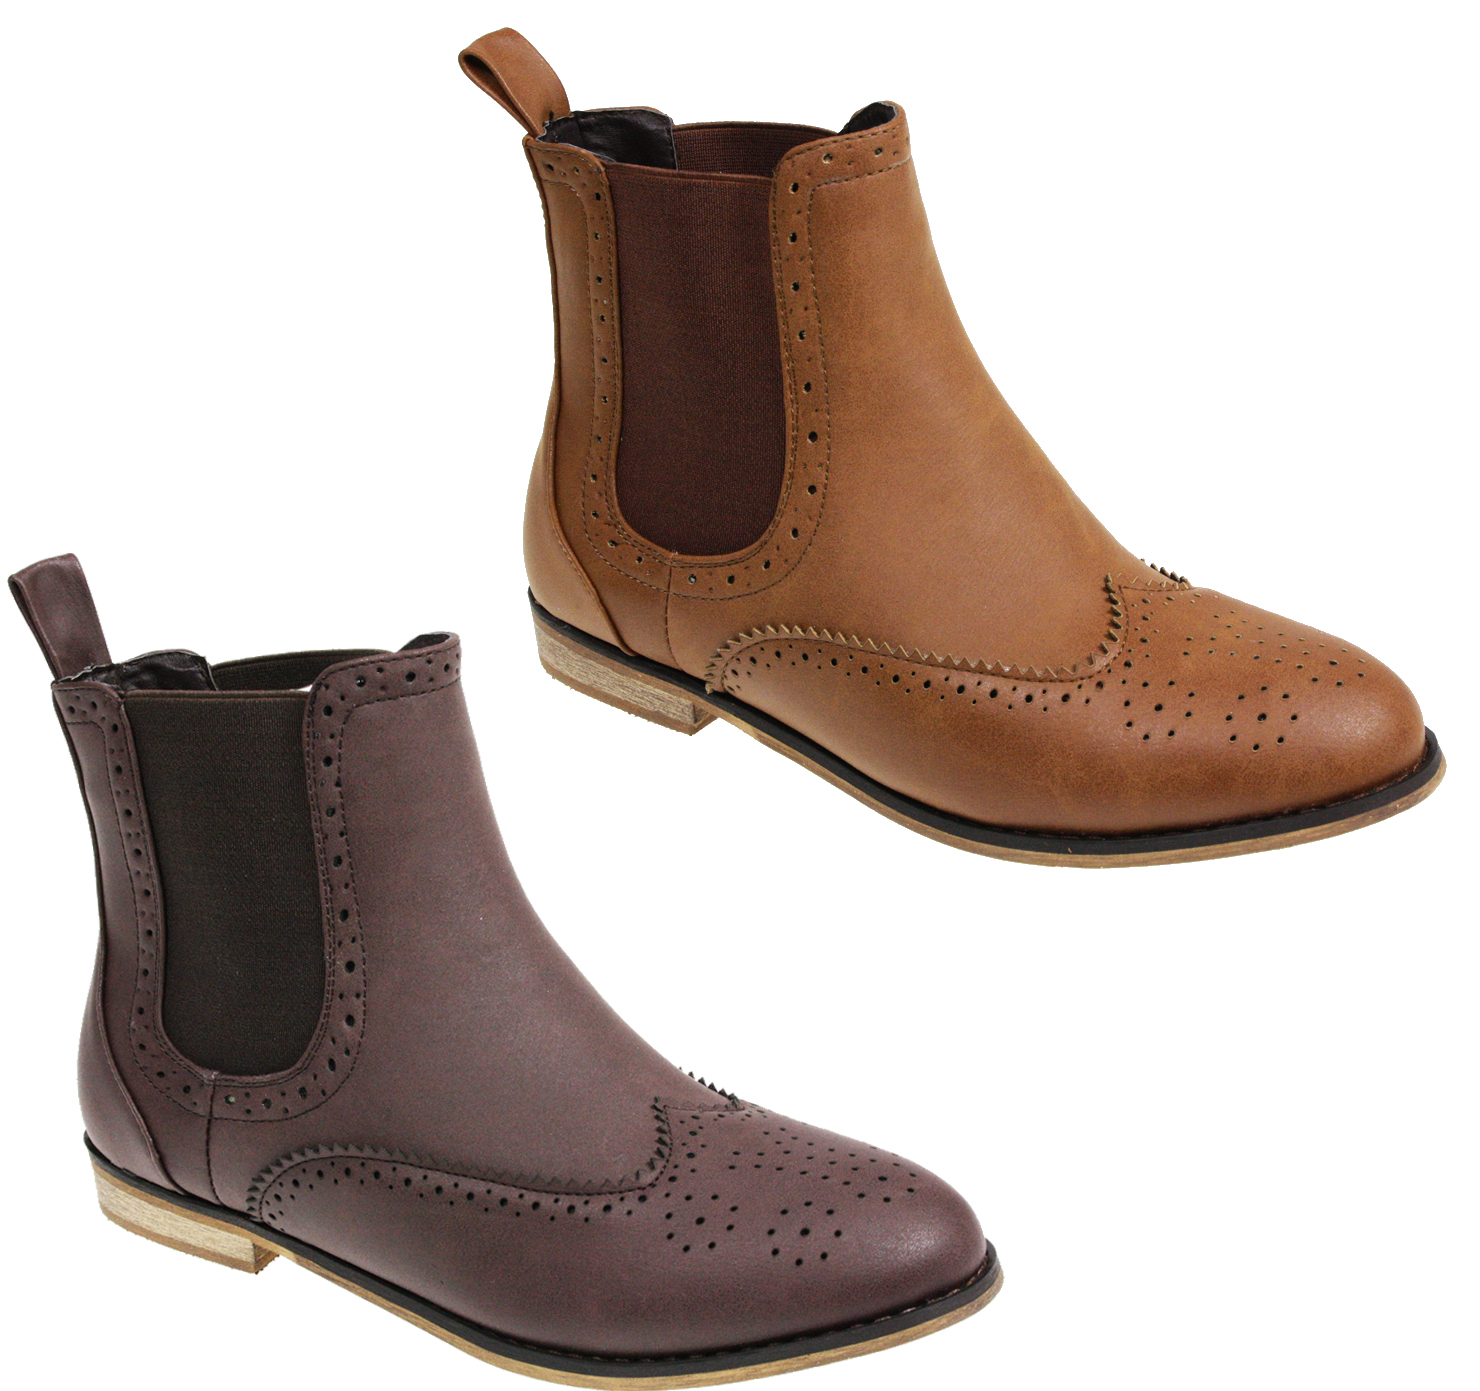 WOMENS-LADIES-FLAT-GUSSET-SLIP-PULL-ON-CHELSEA-RIDING-ANKLE-SHOES-BOOTS-SIZE